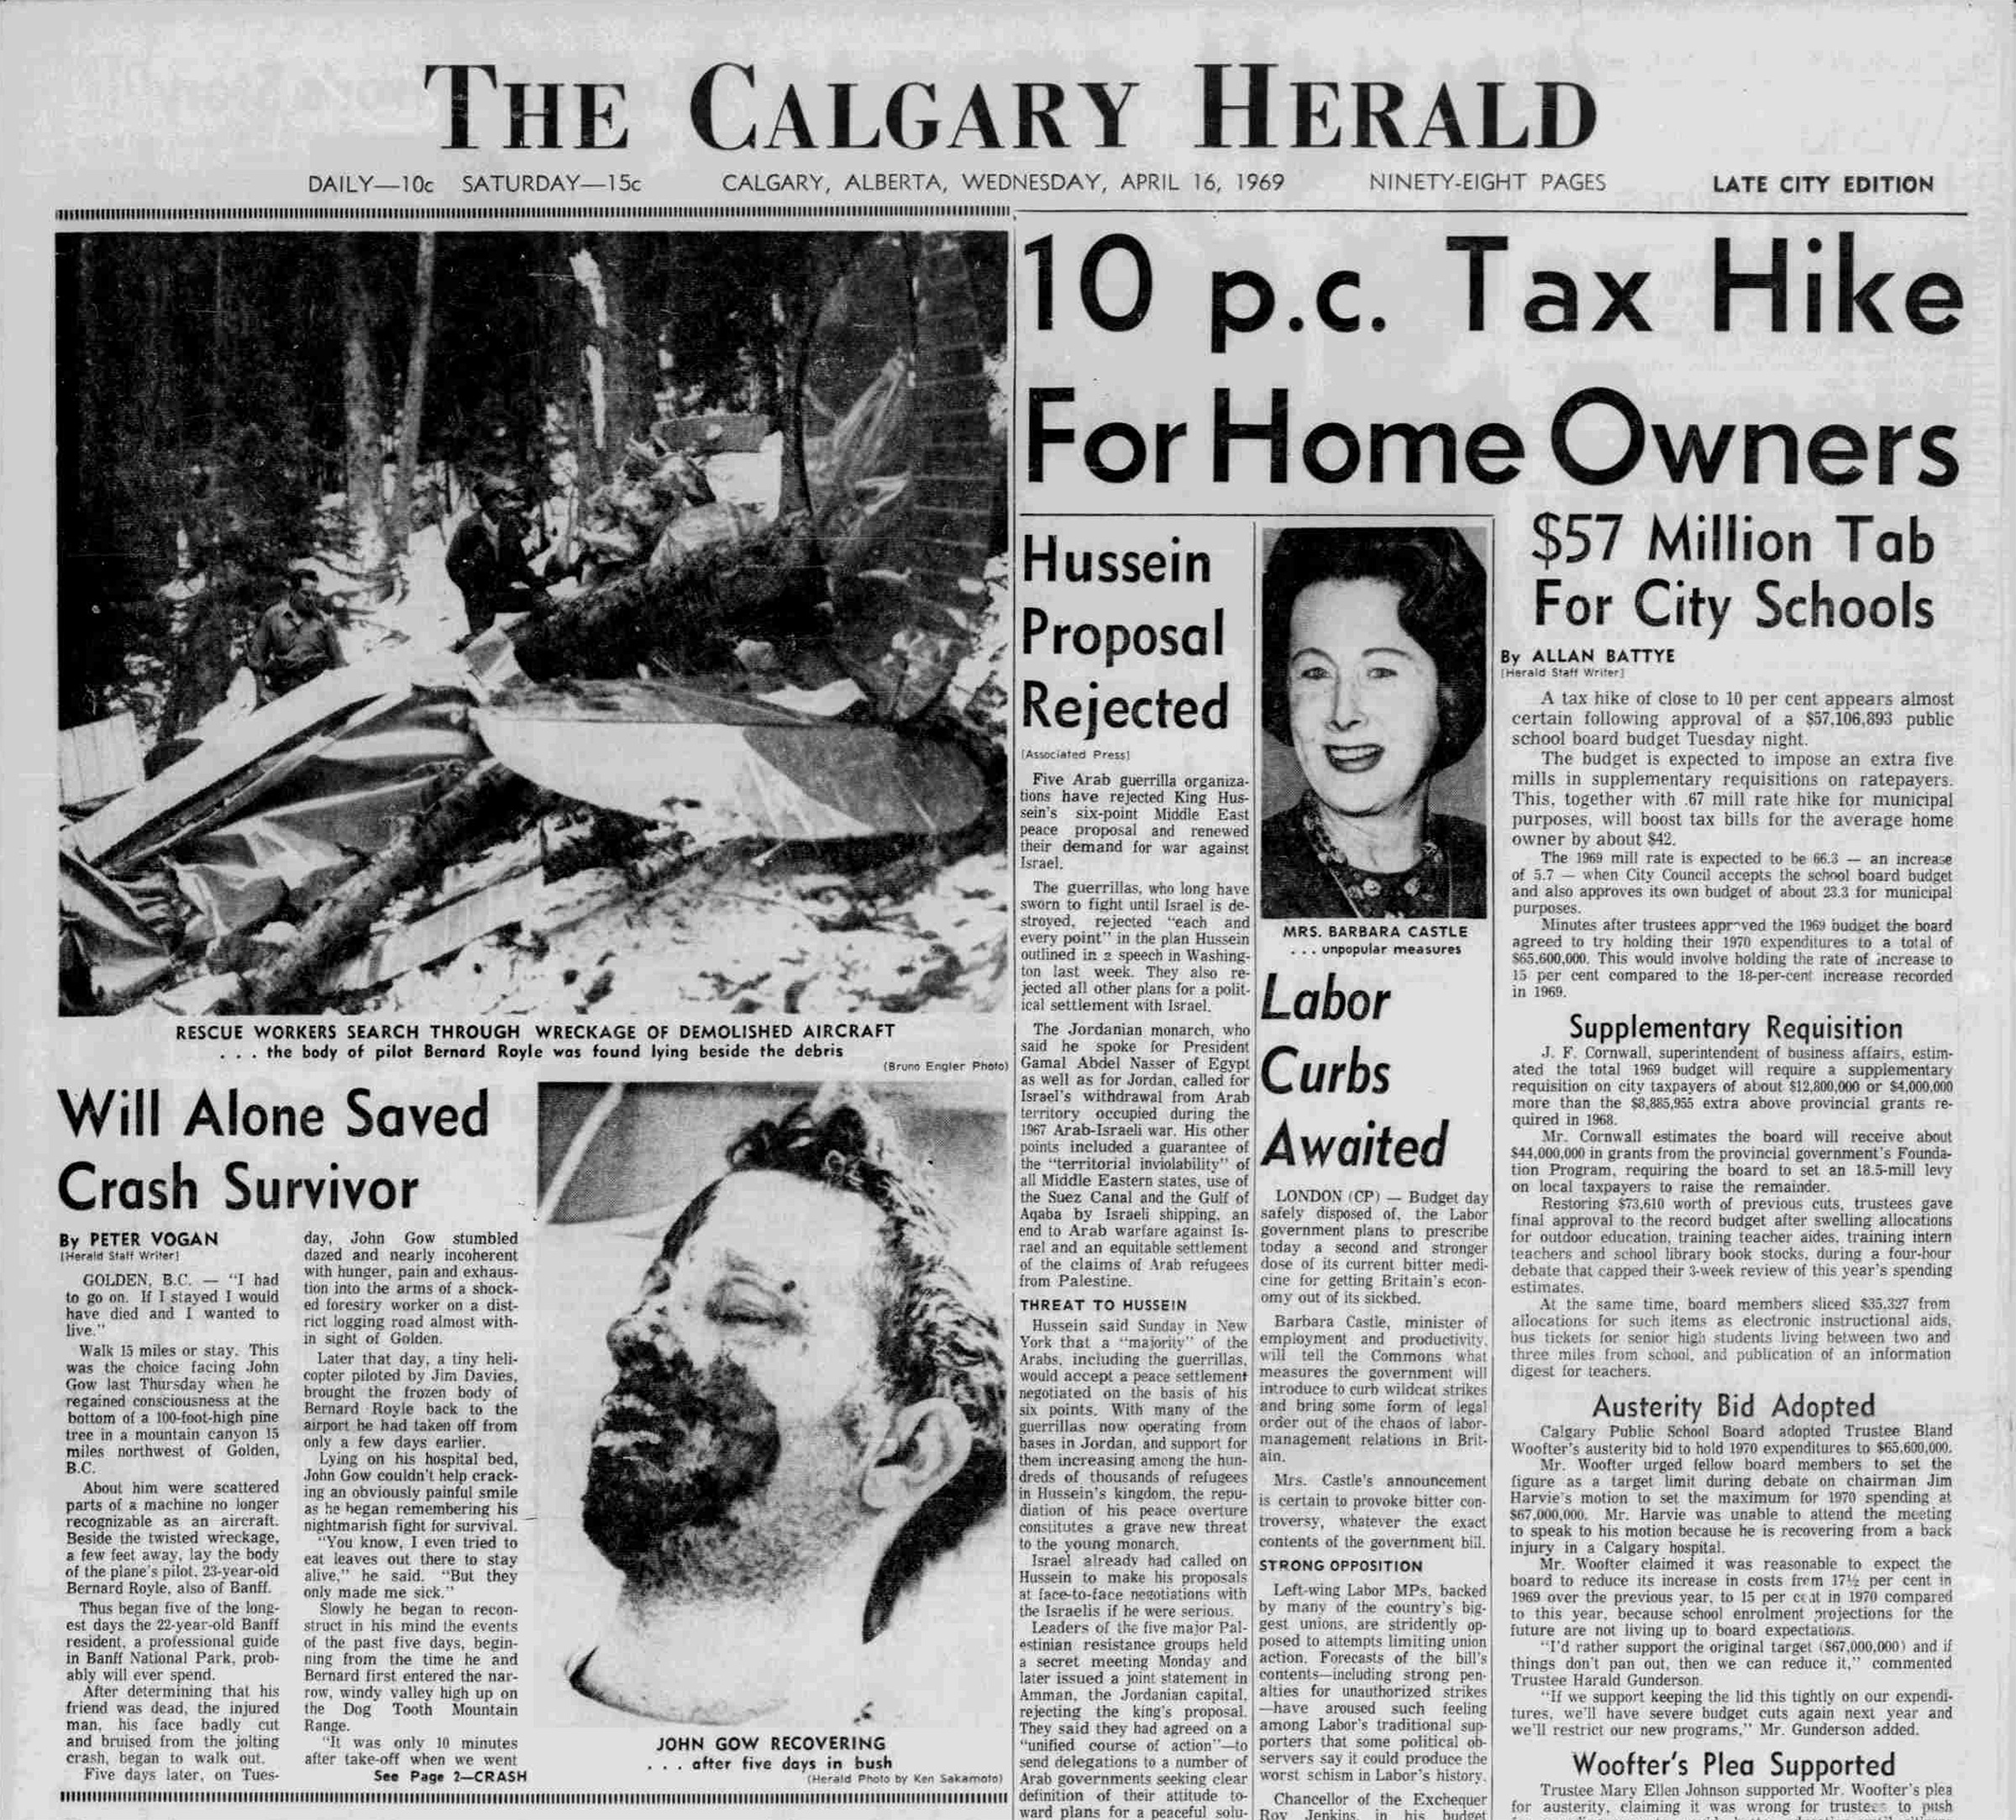 The front page of The Calgary Herald (cropped), April 16, 1969